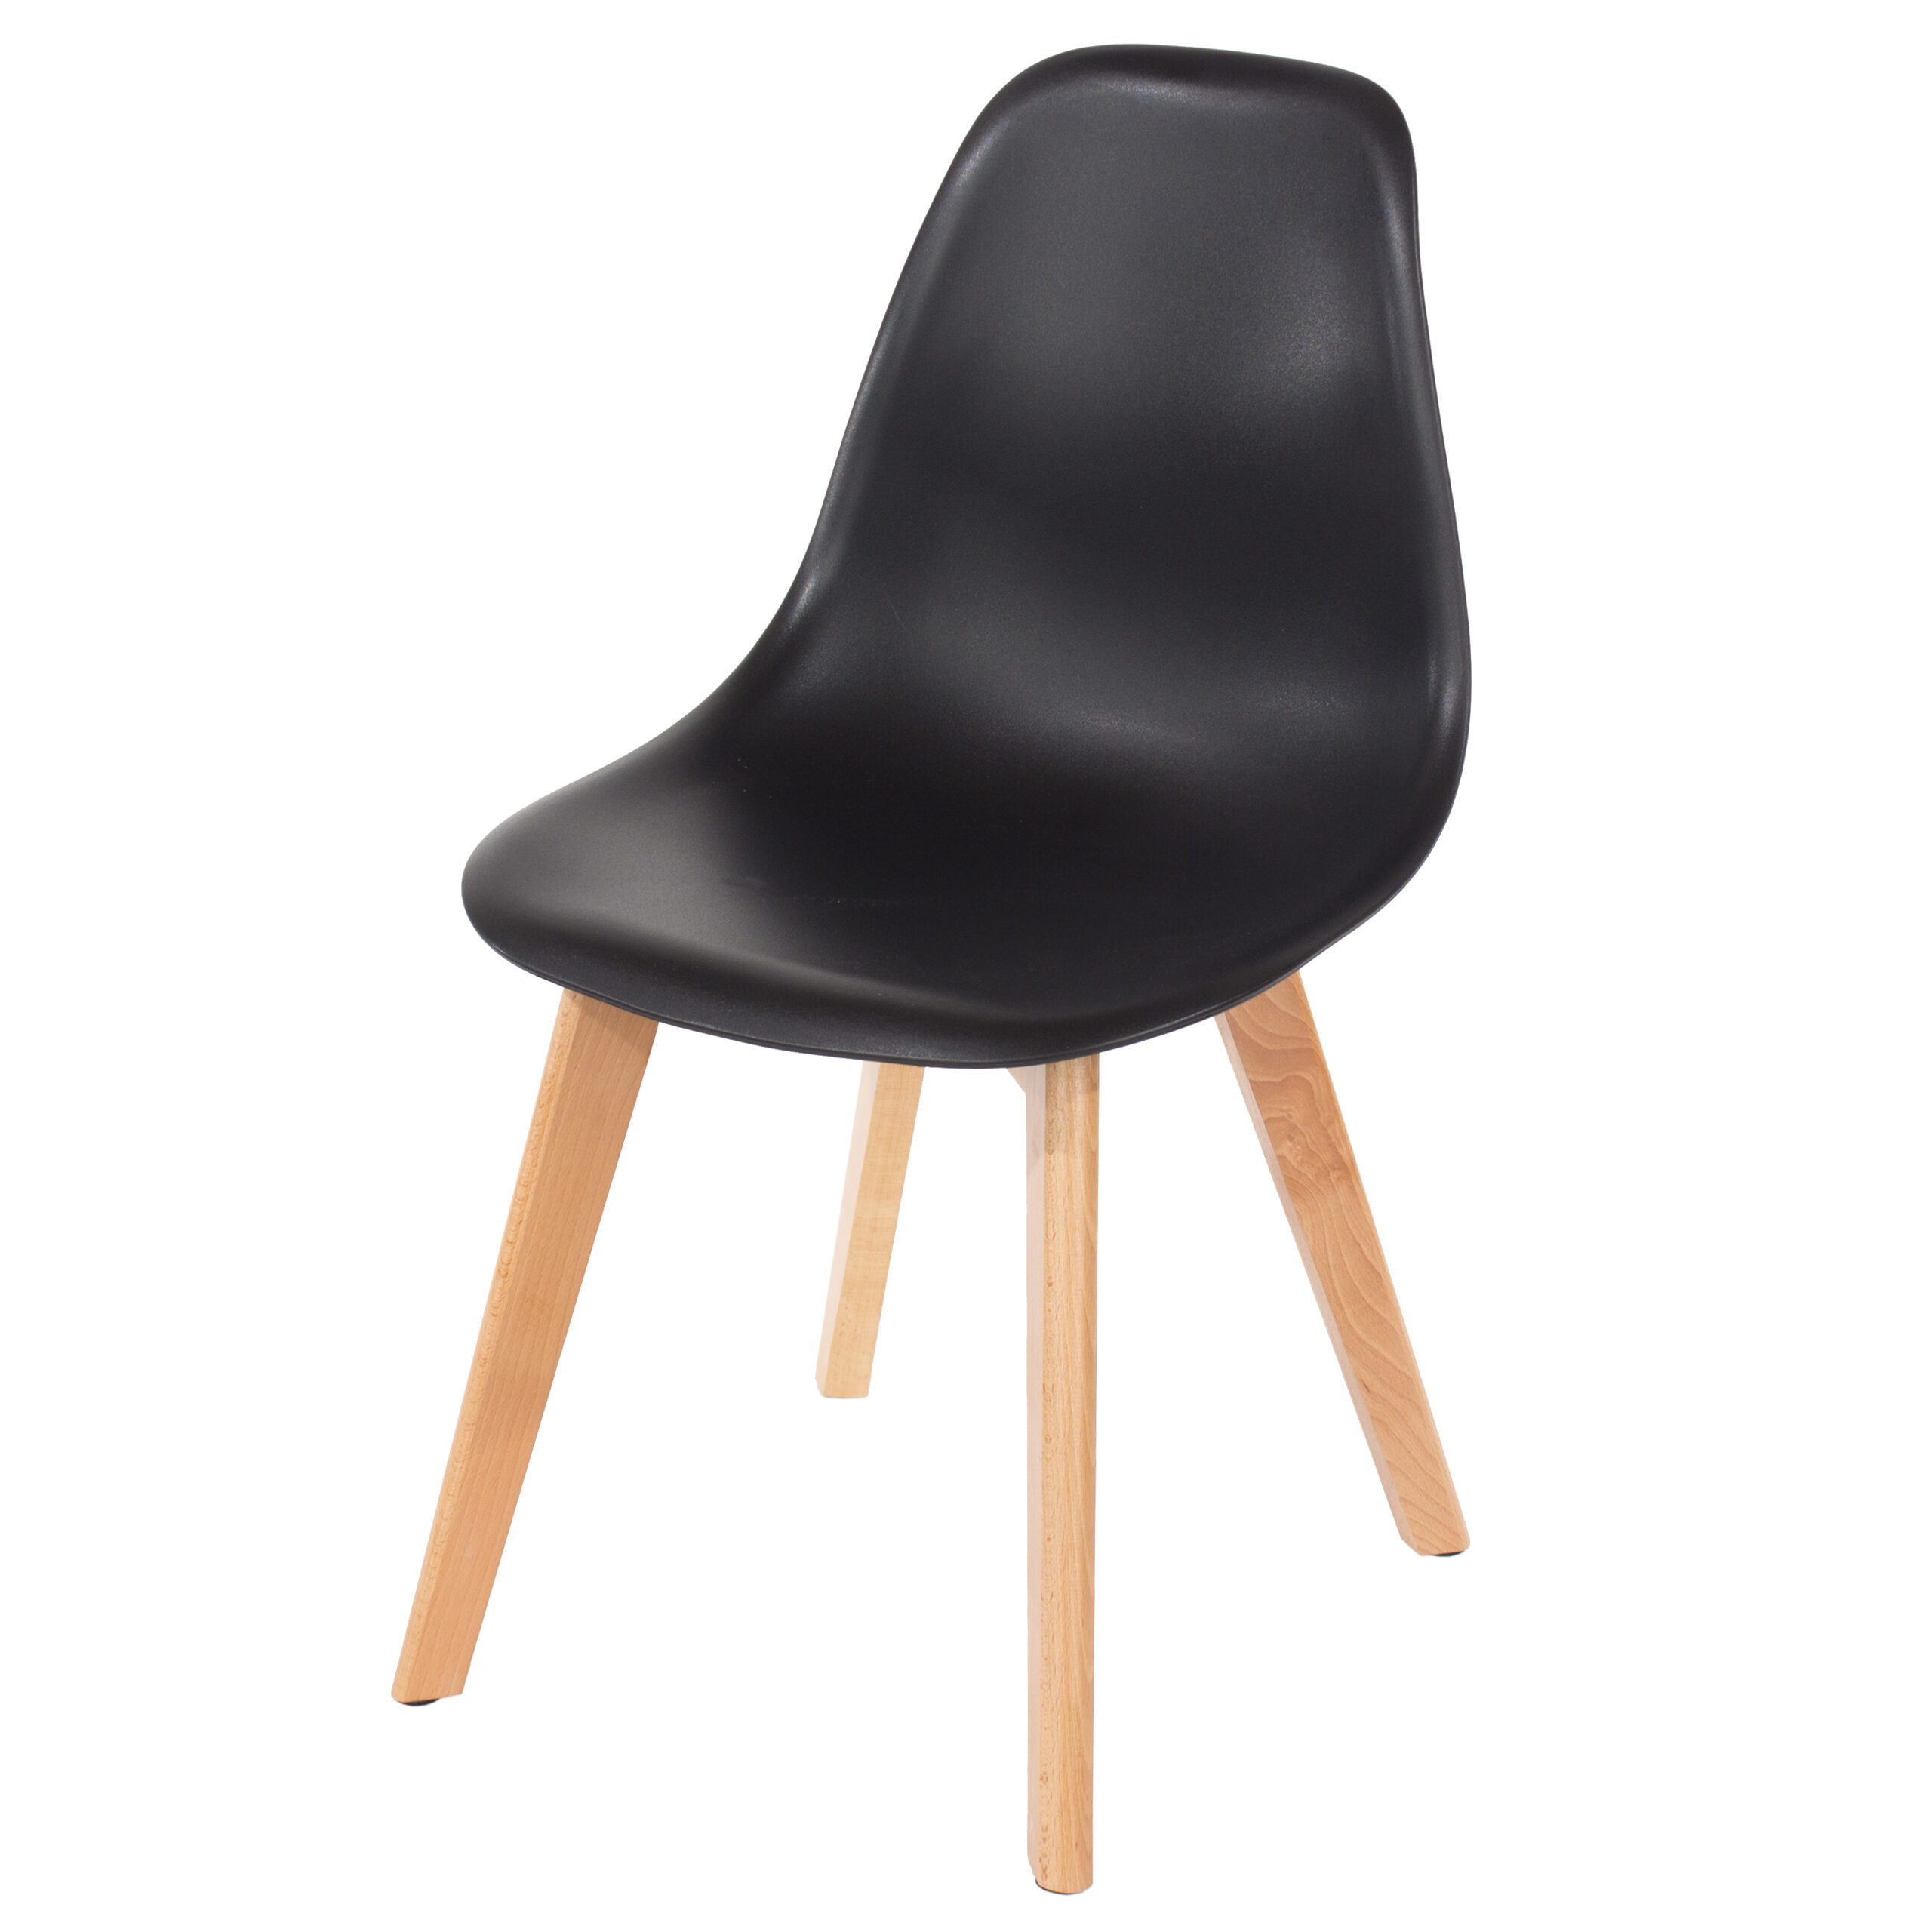 Penny black plastic chairs with wood legs (pair)